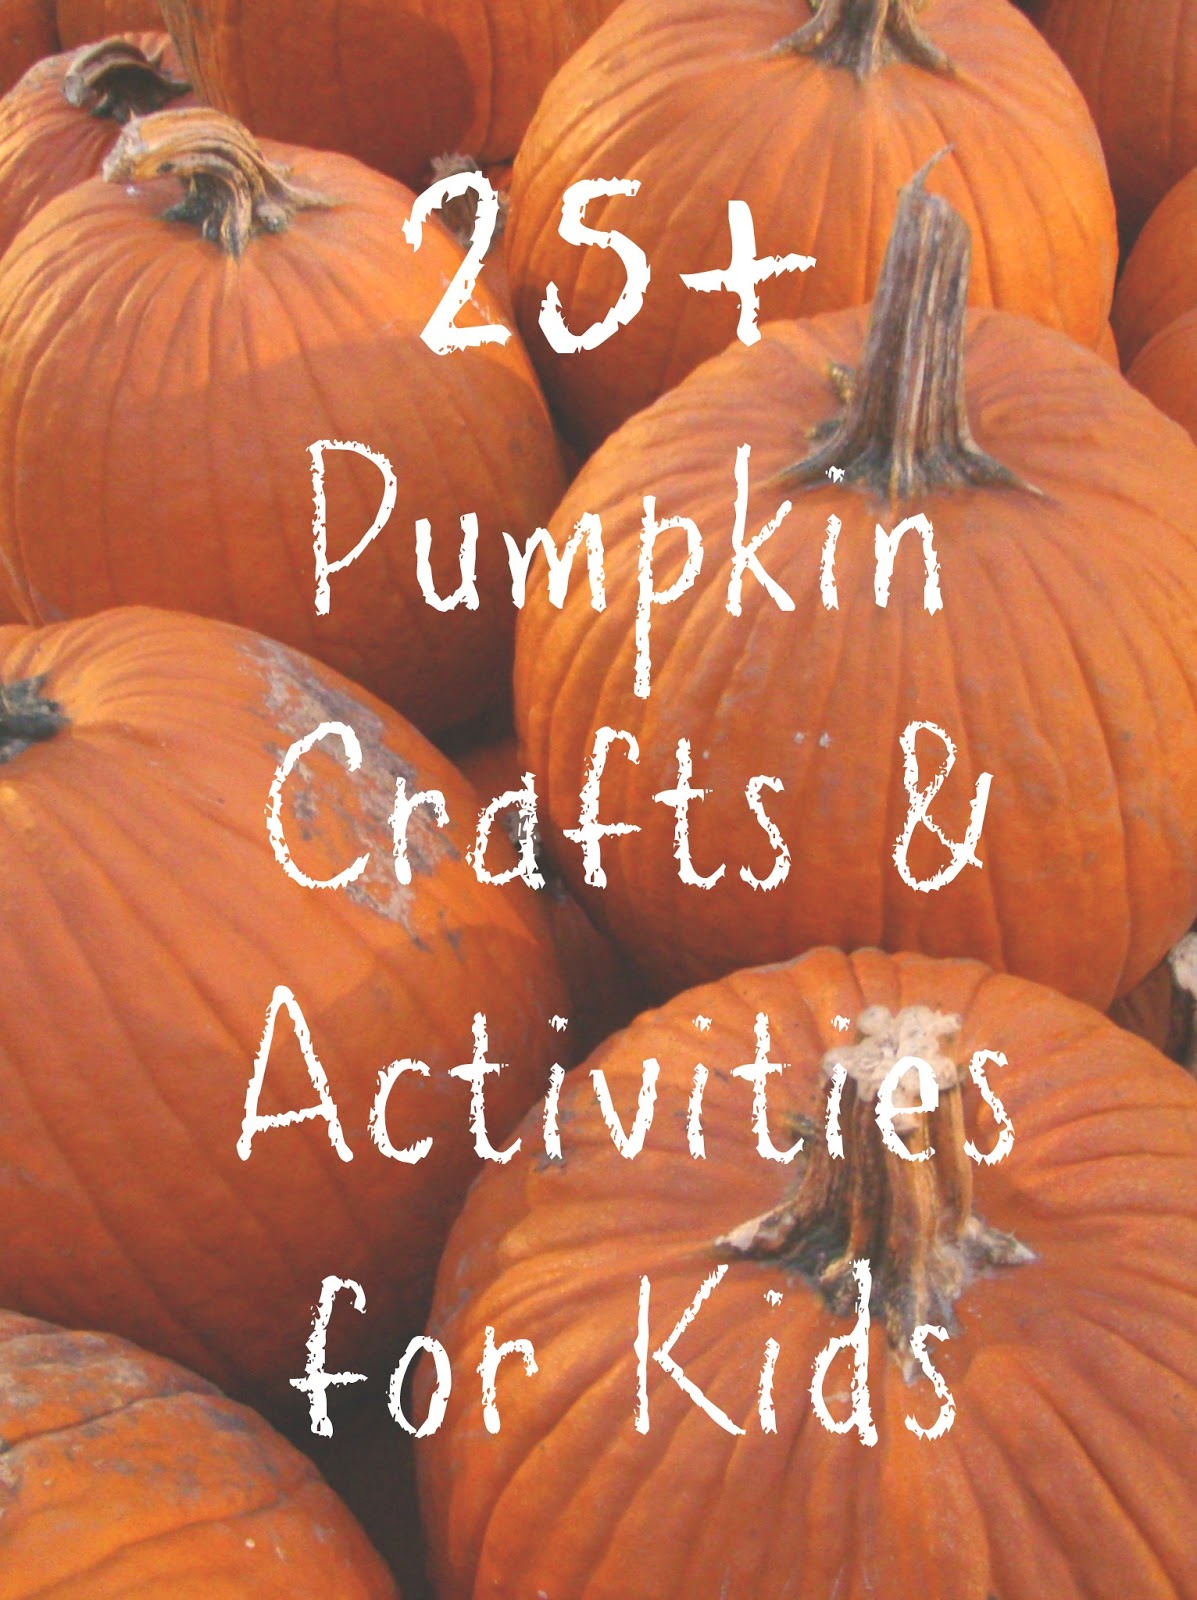 This is an image of Agile Pumpkin Crafts for Toddlers